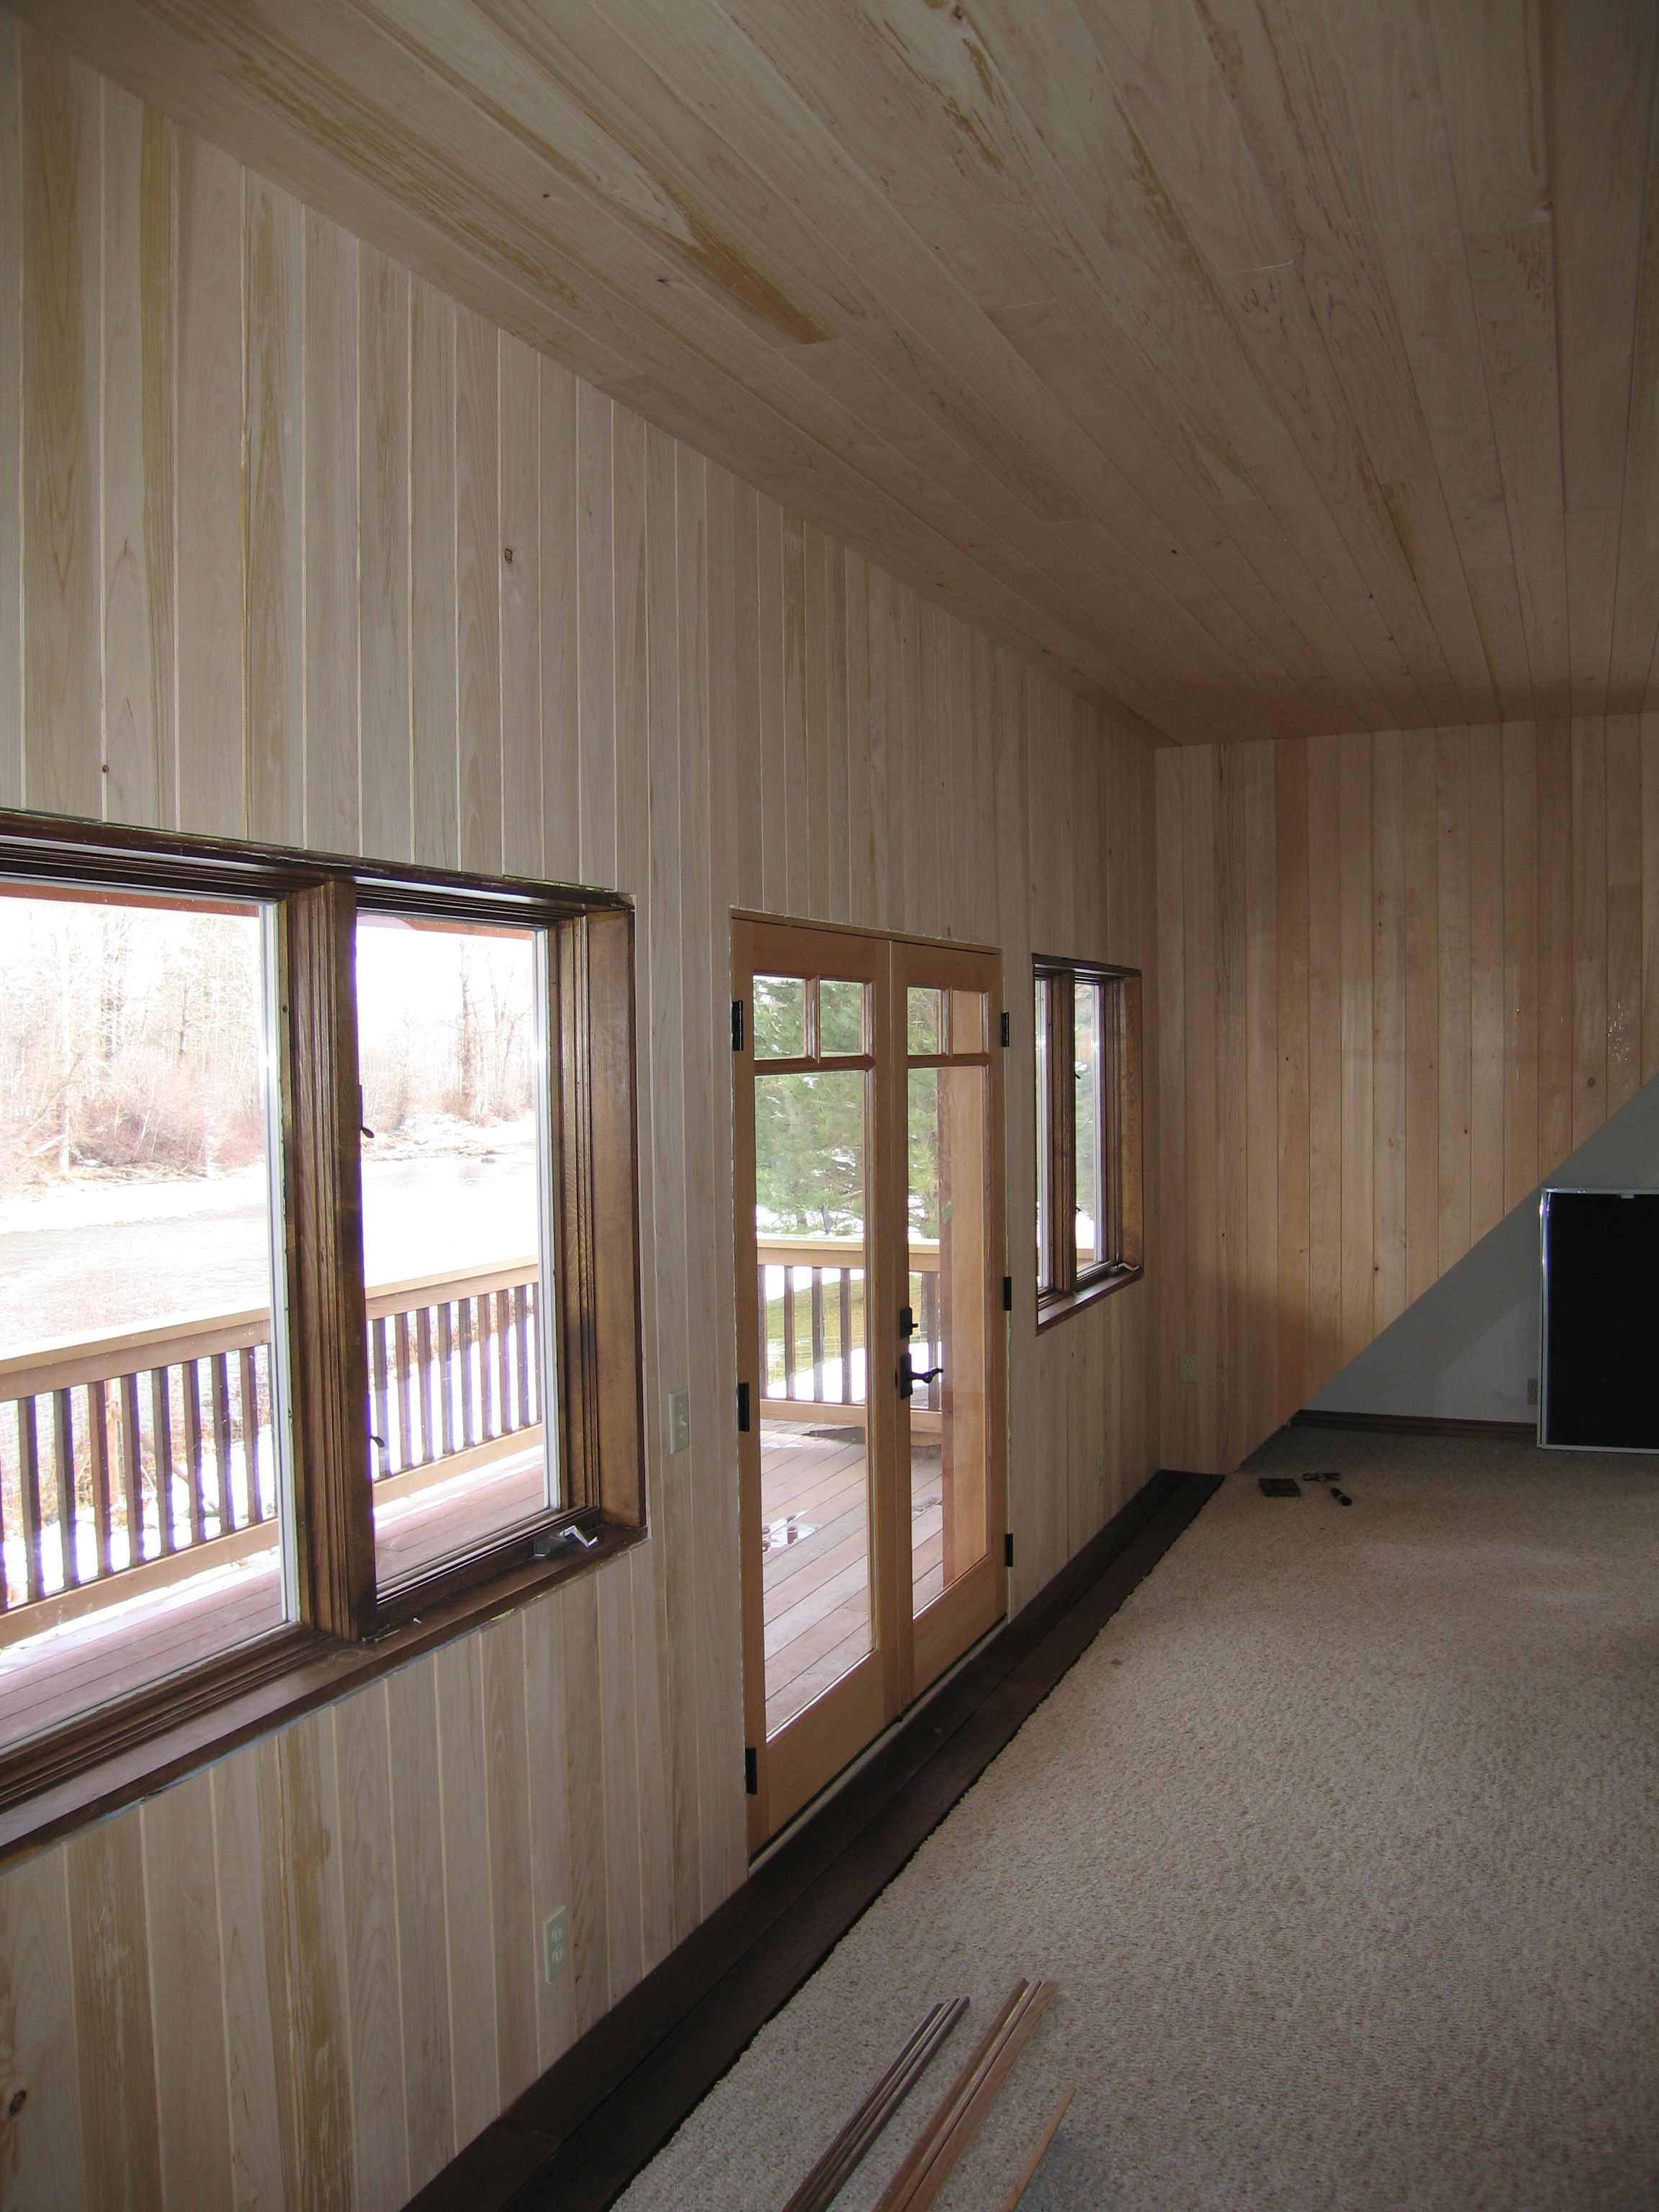 with plus photo irradiate as beams w ceilings paneling wood ceiling inspirations like well reclaimed and together planks